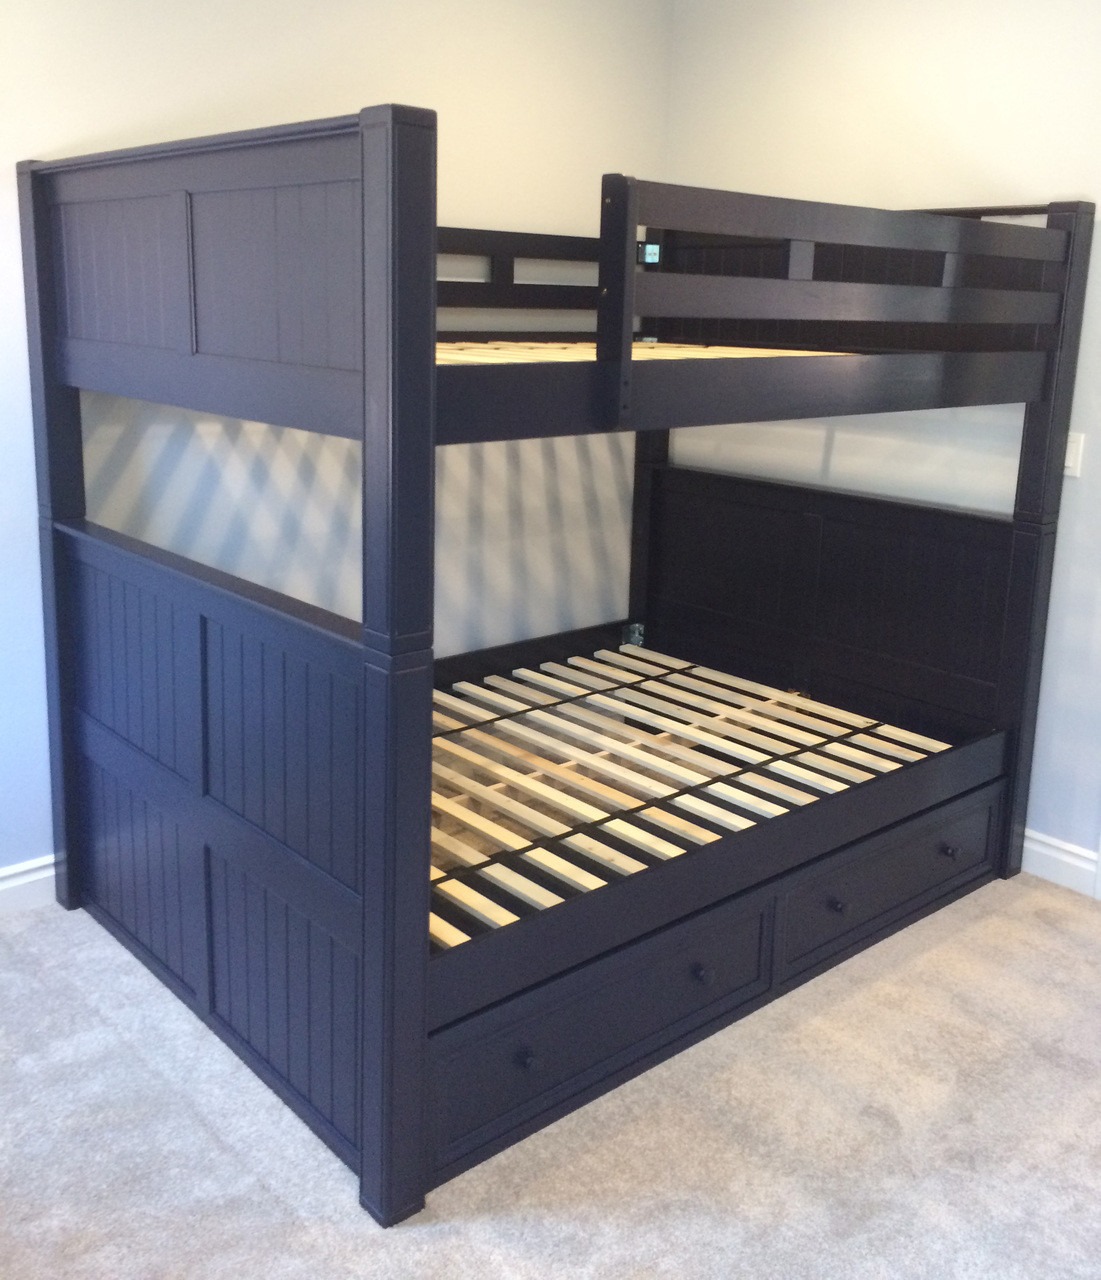 Accessories choose an option under bed drawers trundle bed none -  Navy Blue Finish Dark Pecan Finish Shown With Under Bed Trundle Walnut Finish Shown With Under Bed Drawers